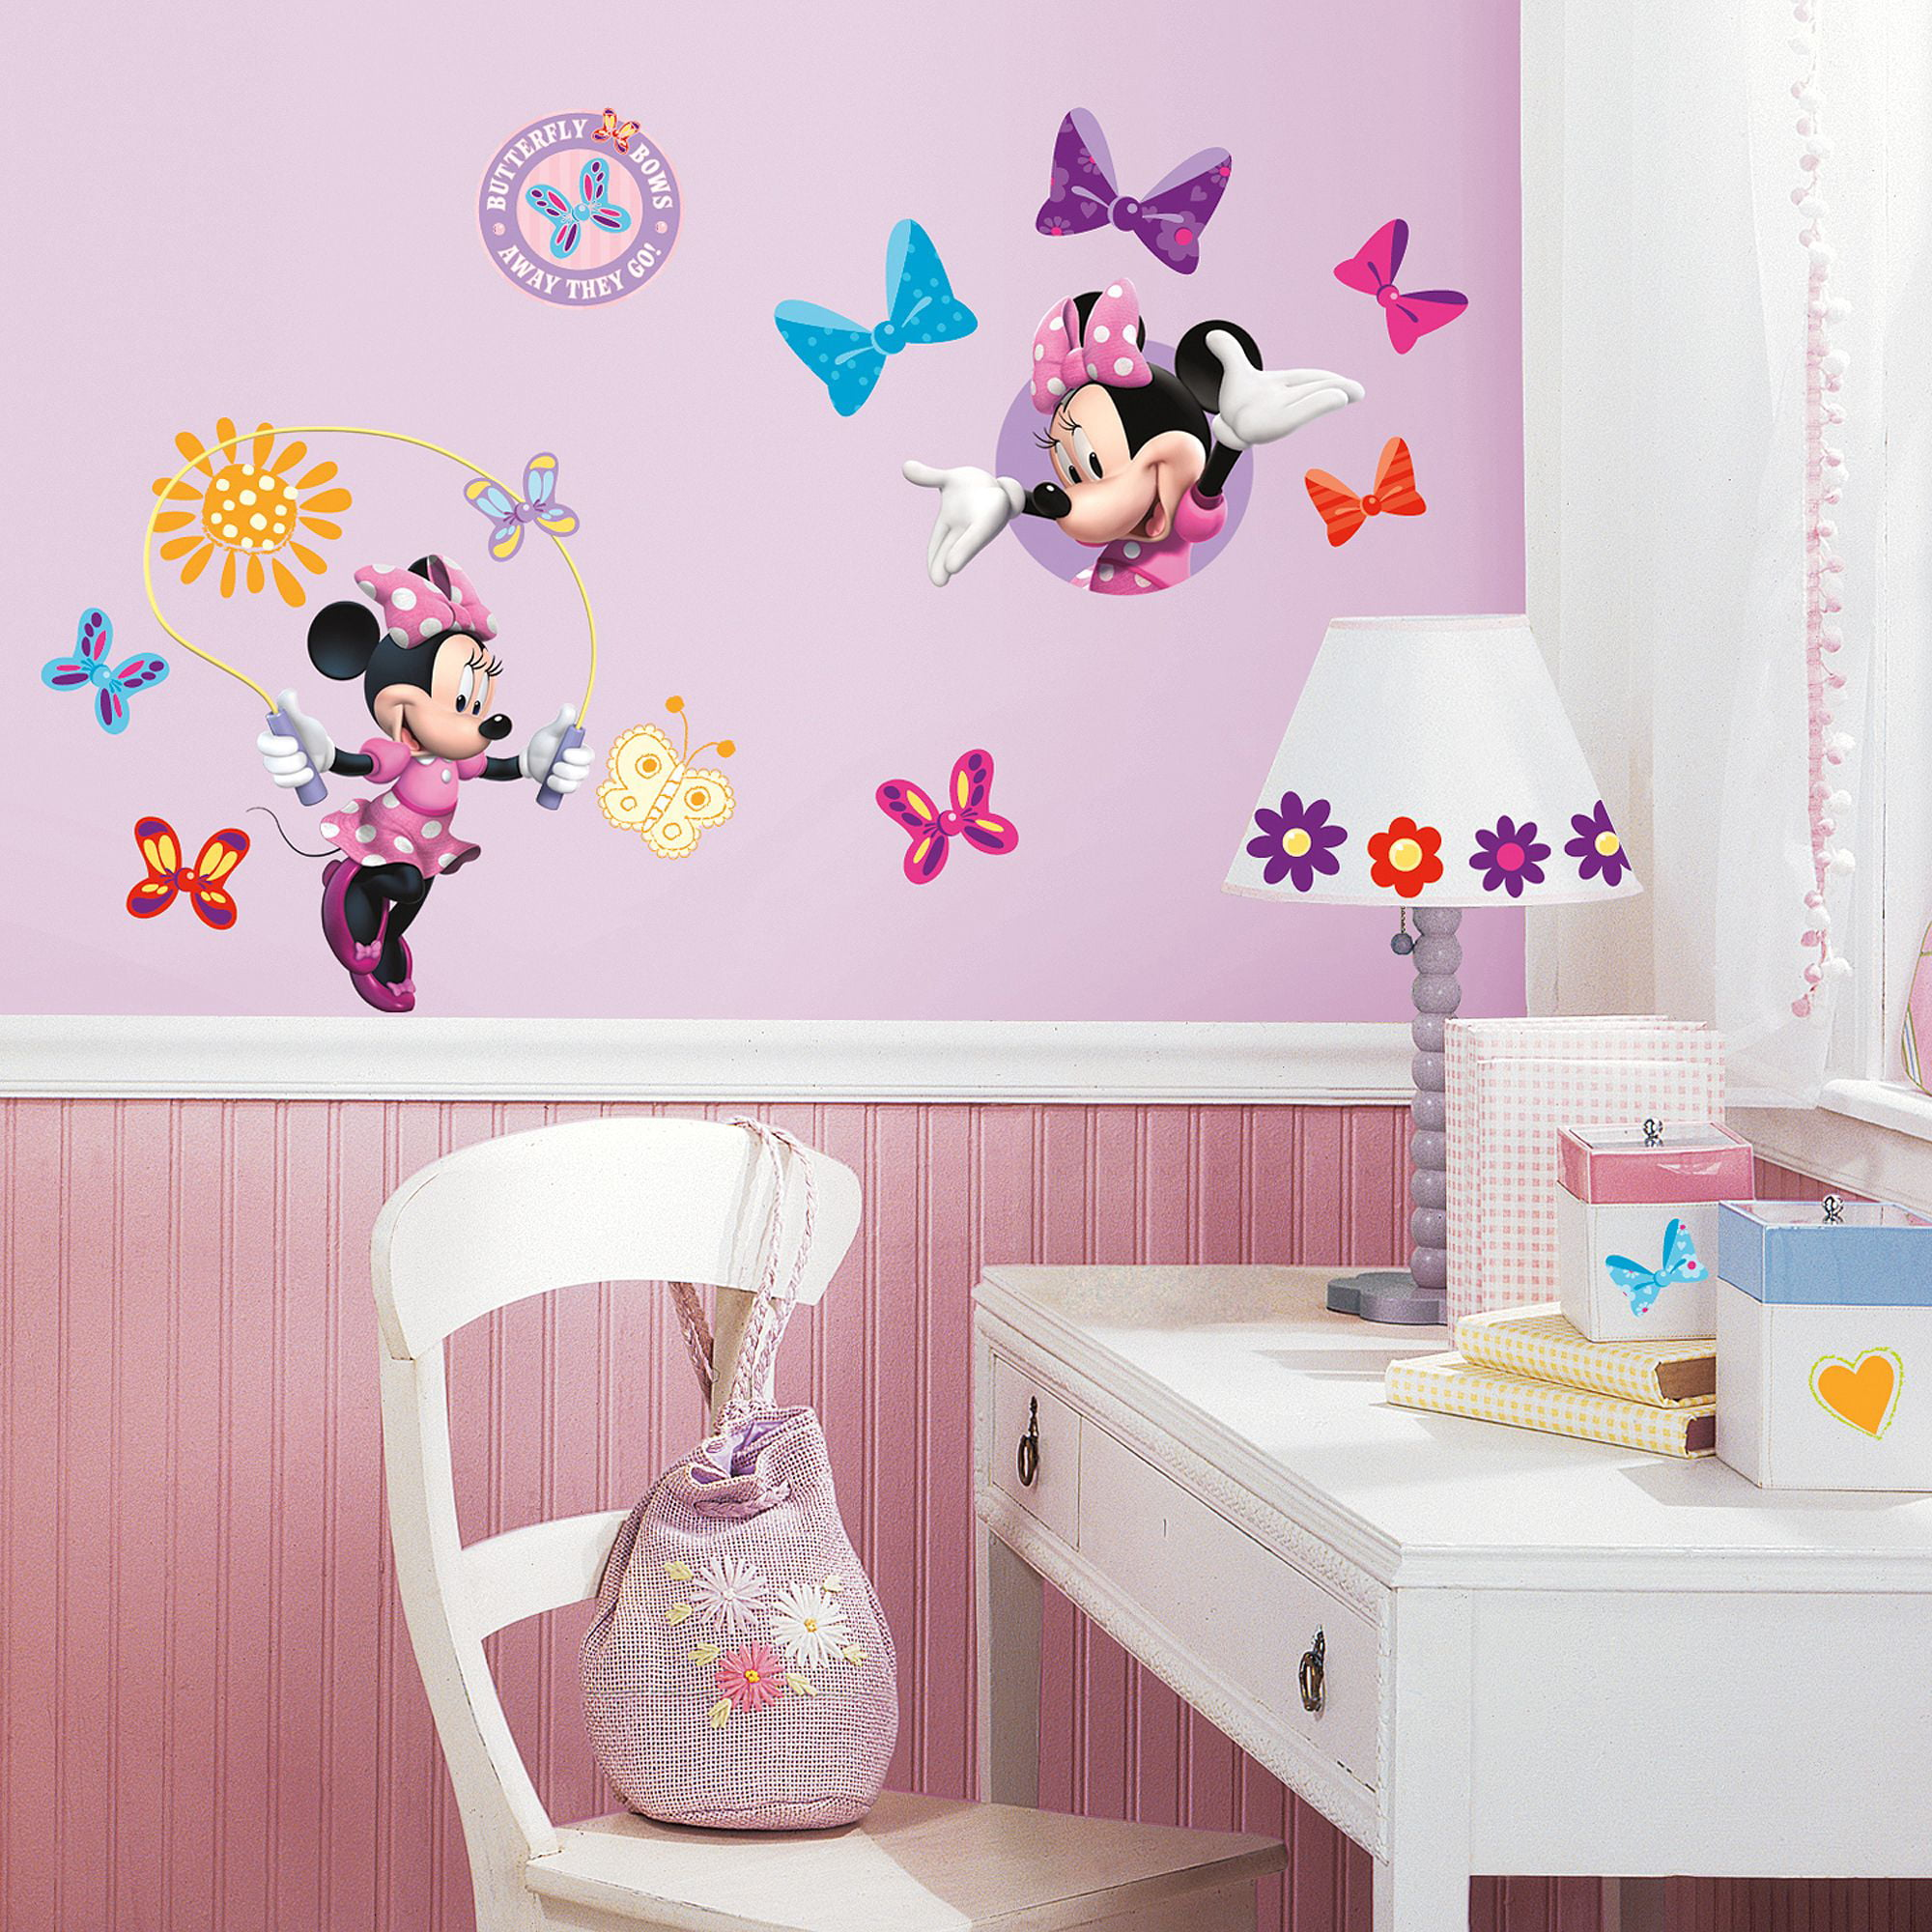 Roommates mickey and friends minnie bow tique peel and stick wall roommates mickey and friends minnie bow tique peel and stick wall decals walmart amipublicfo Gallery